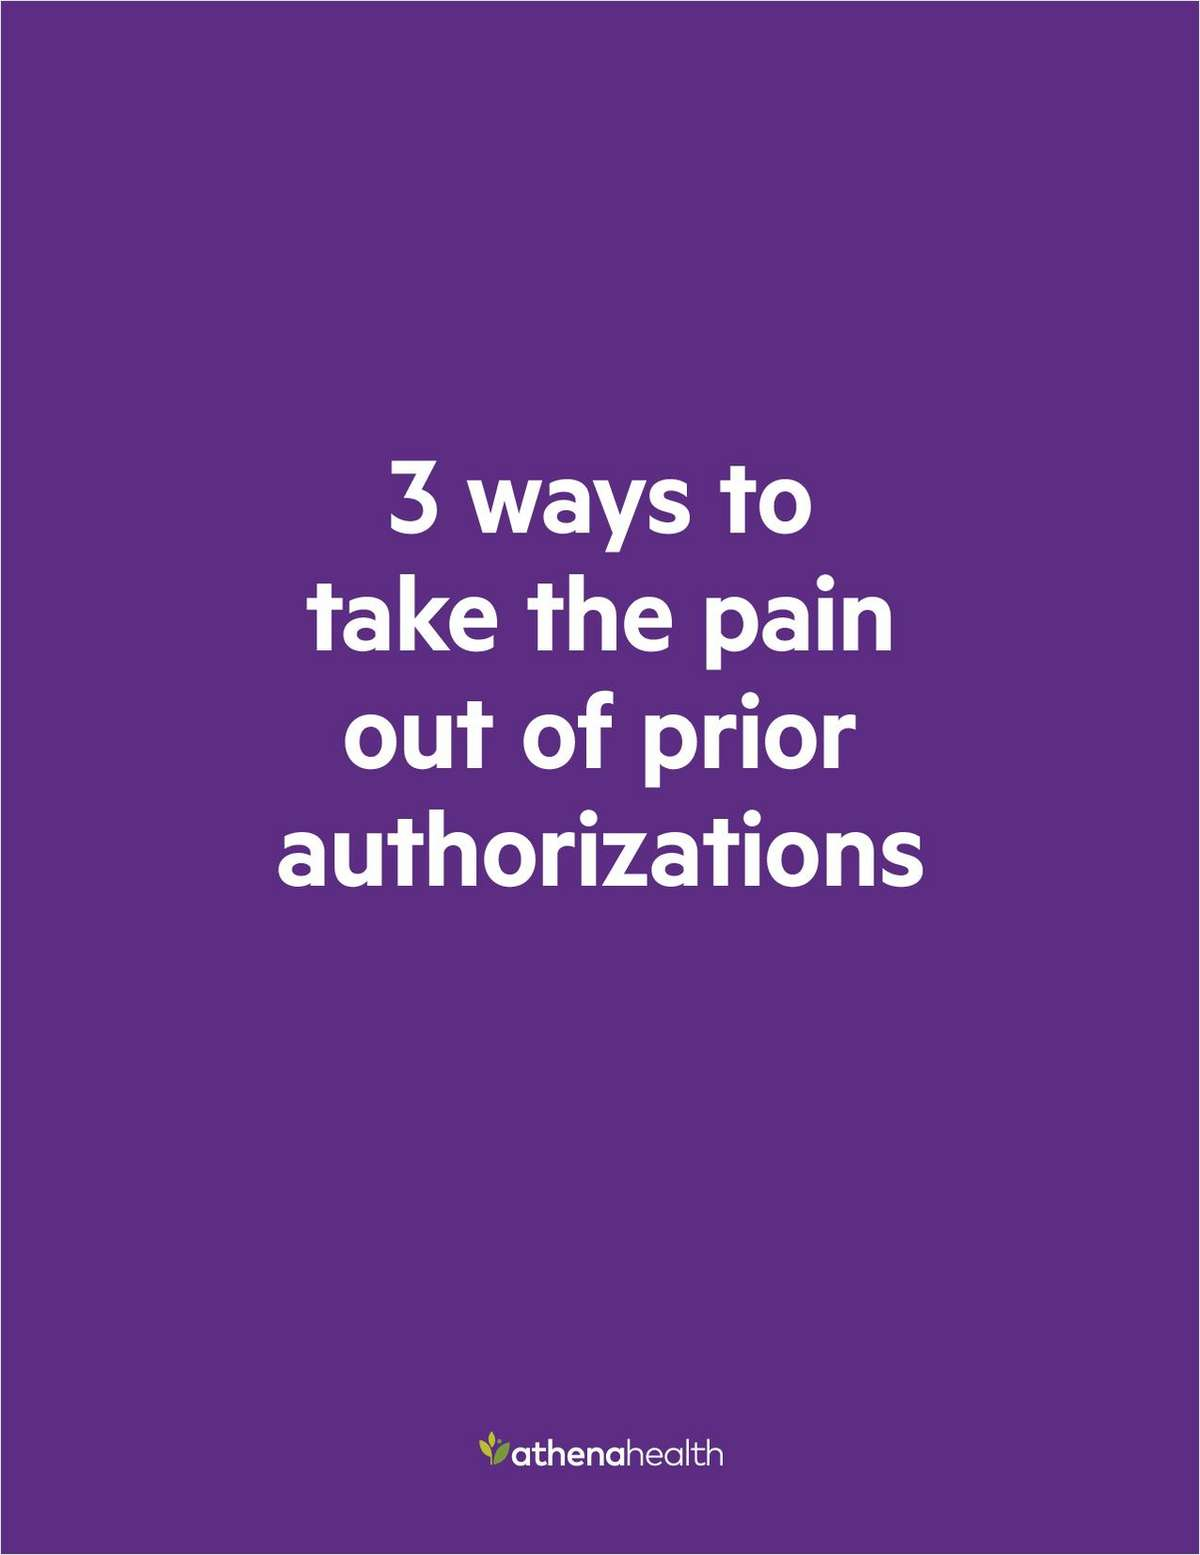 3 ways to take the pain out of prior authorizations